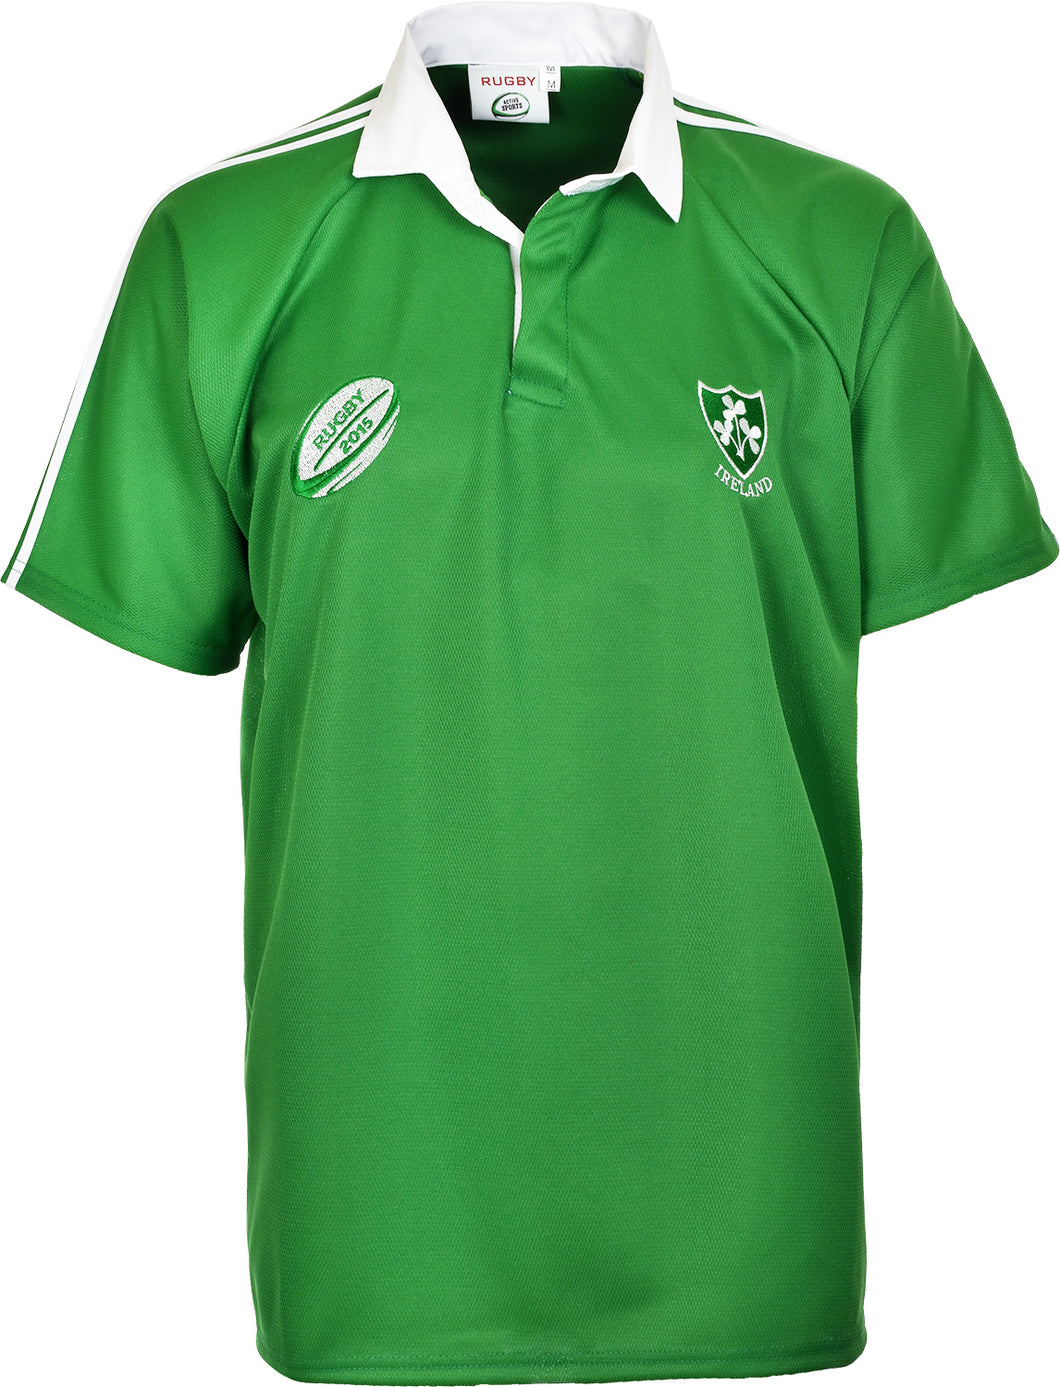 Men's Rugby Ireland Half Sleeve T-Shirt